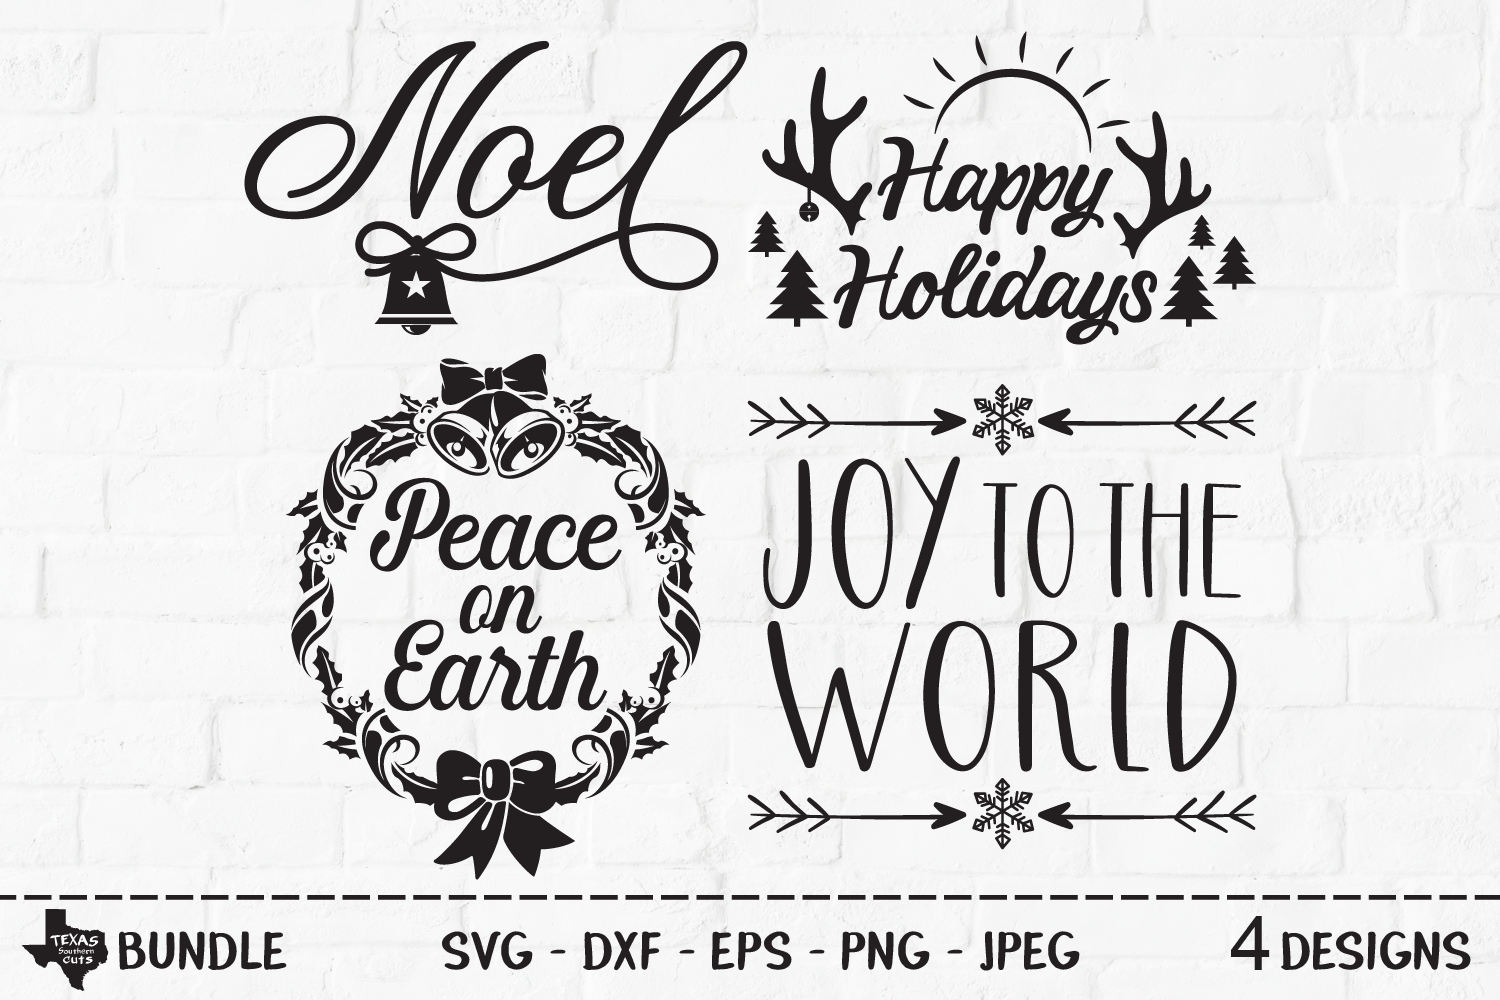 Download Free Christmas Bundle Christmas Designs Graphic By Texassoutherncuts Creative Fabrica for Cricut Explore, Silhouette and other cutting machines.